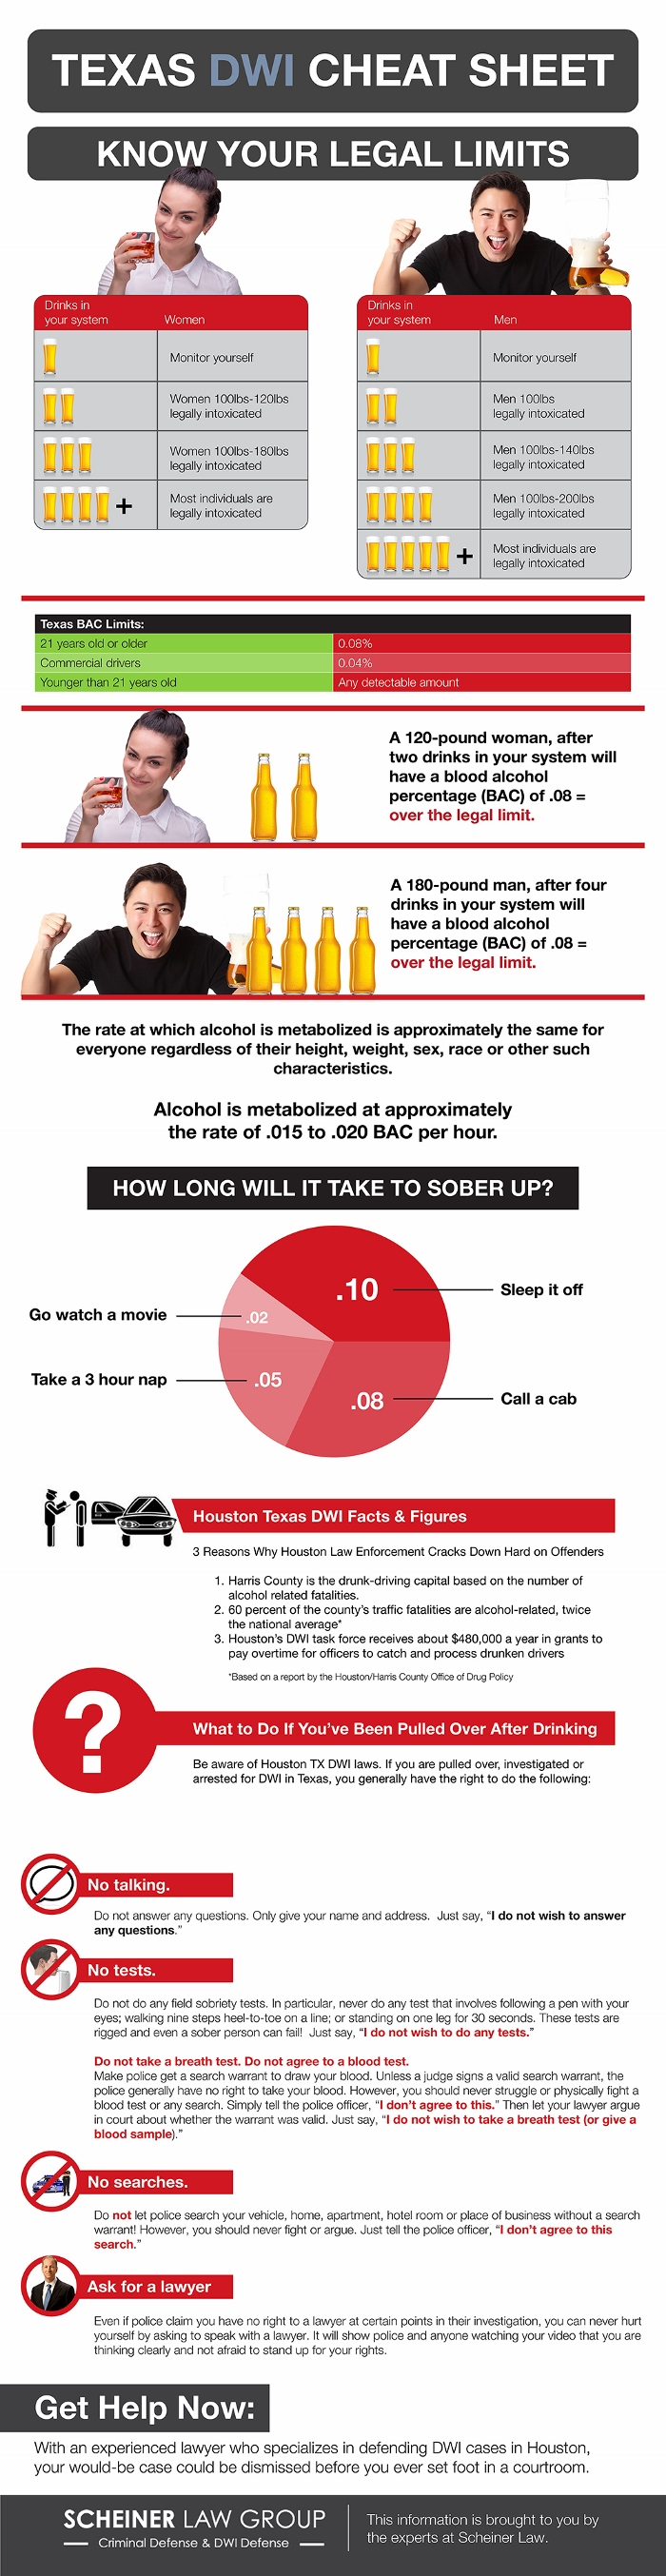 Texas DWI Cheat Sheet